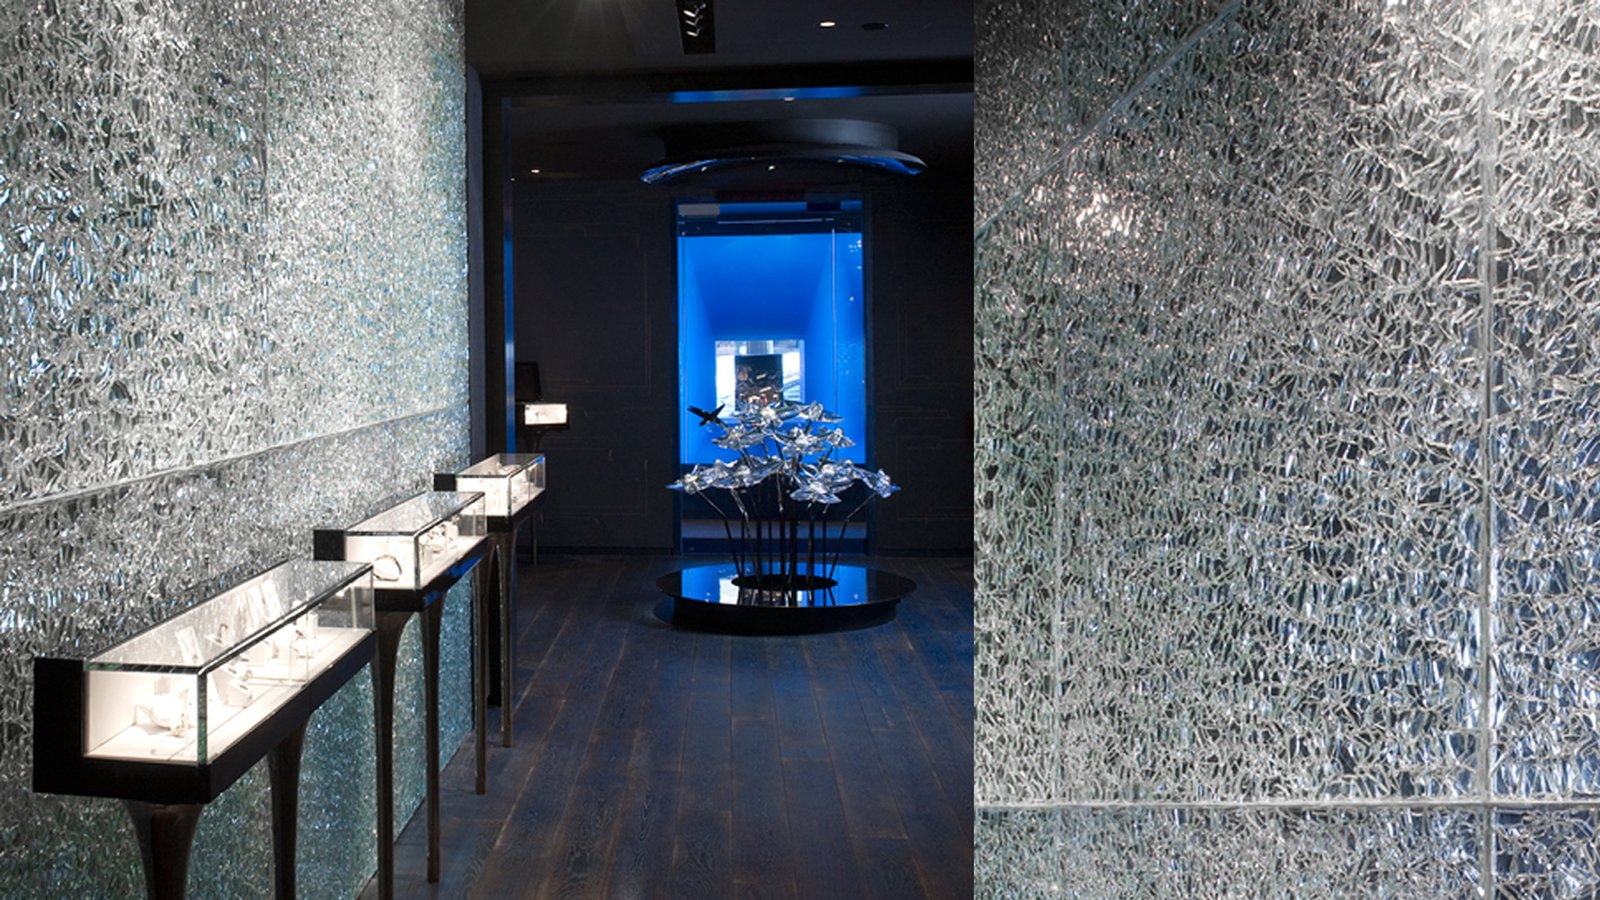 Crackle Glass for French luxury jeweller Mauboussin New York  Designer: Rockwell Group, NY Glass Manufacturer: Nathan Allan Glass Studios  View Case Study: http://nathanallan.com/our-portfolio/mauboussin/  Architectural + Decorative Glass